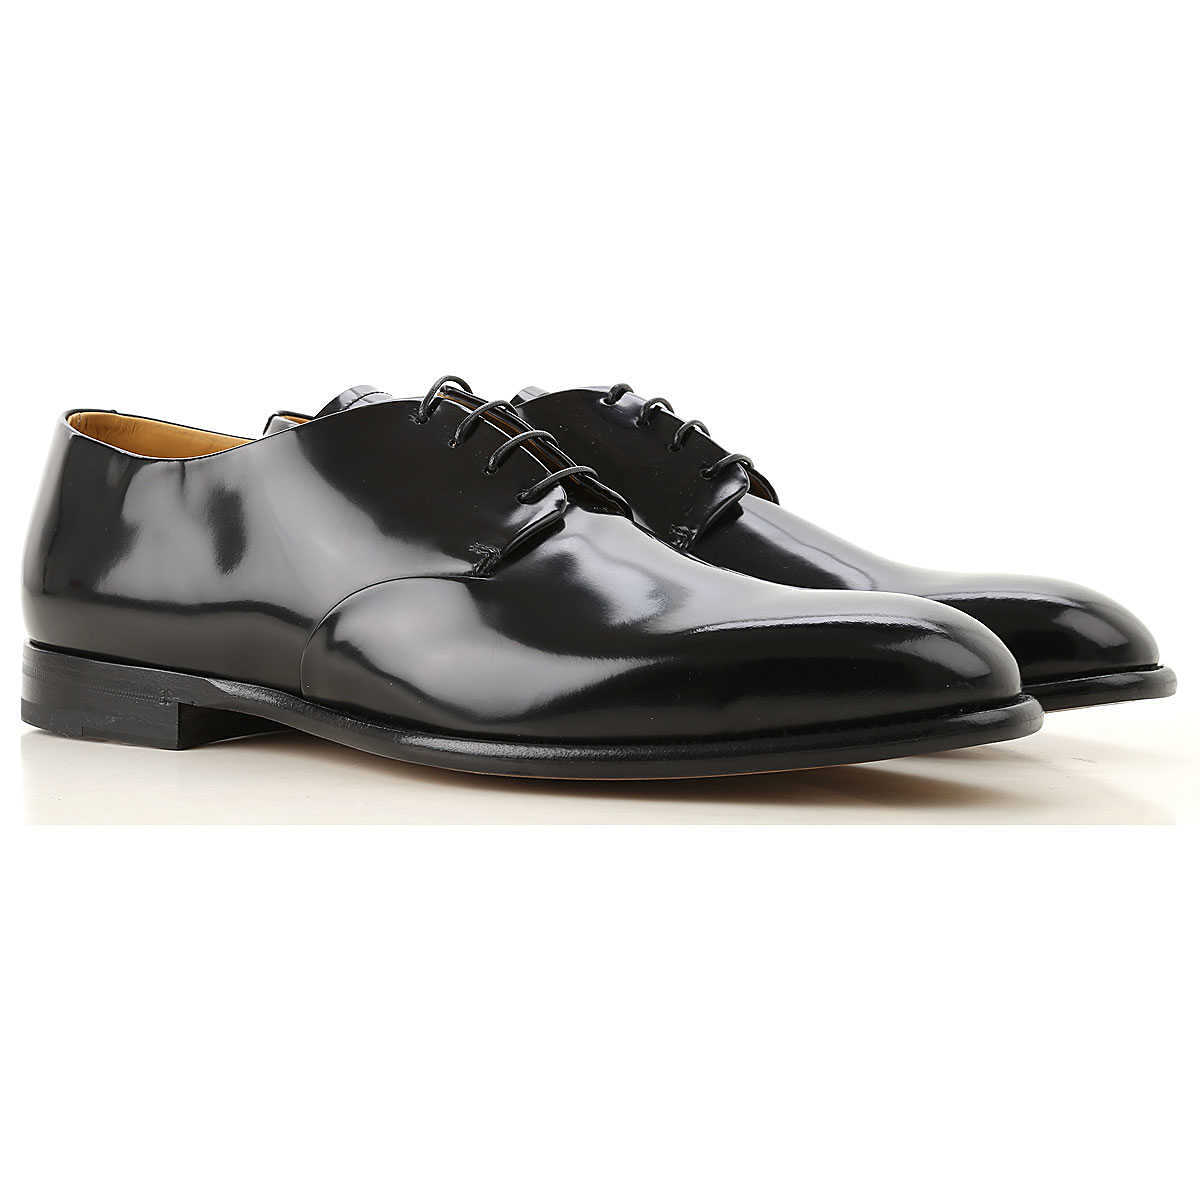 Fabi Lace Up Shoes for Men Oxfords Derbies and Brogues On Sale - GOOFASH